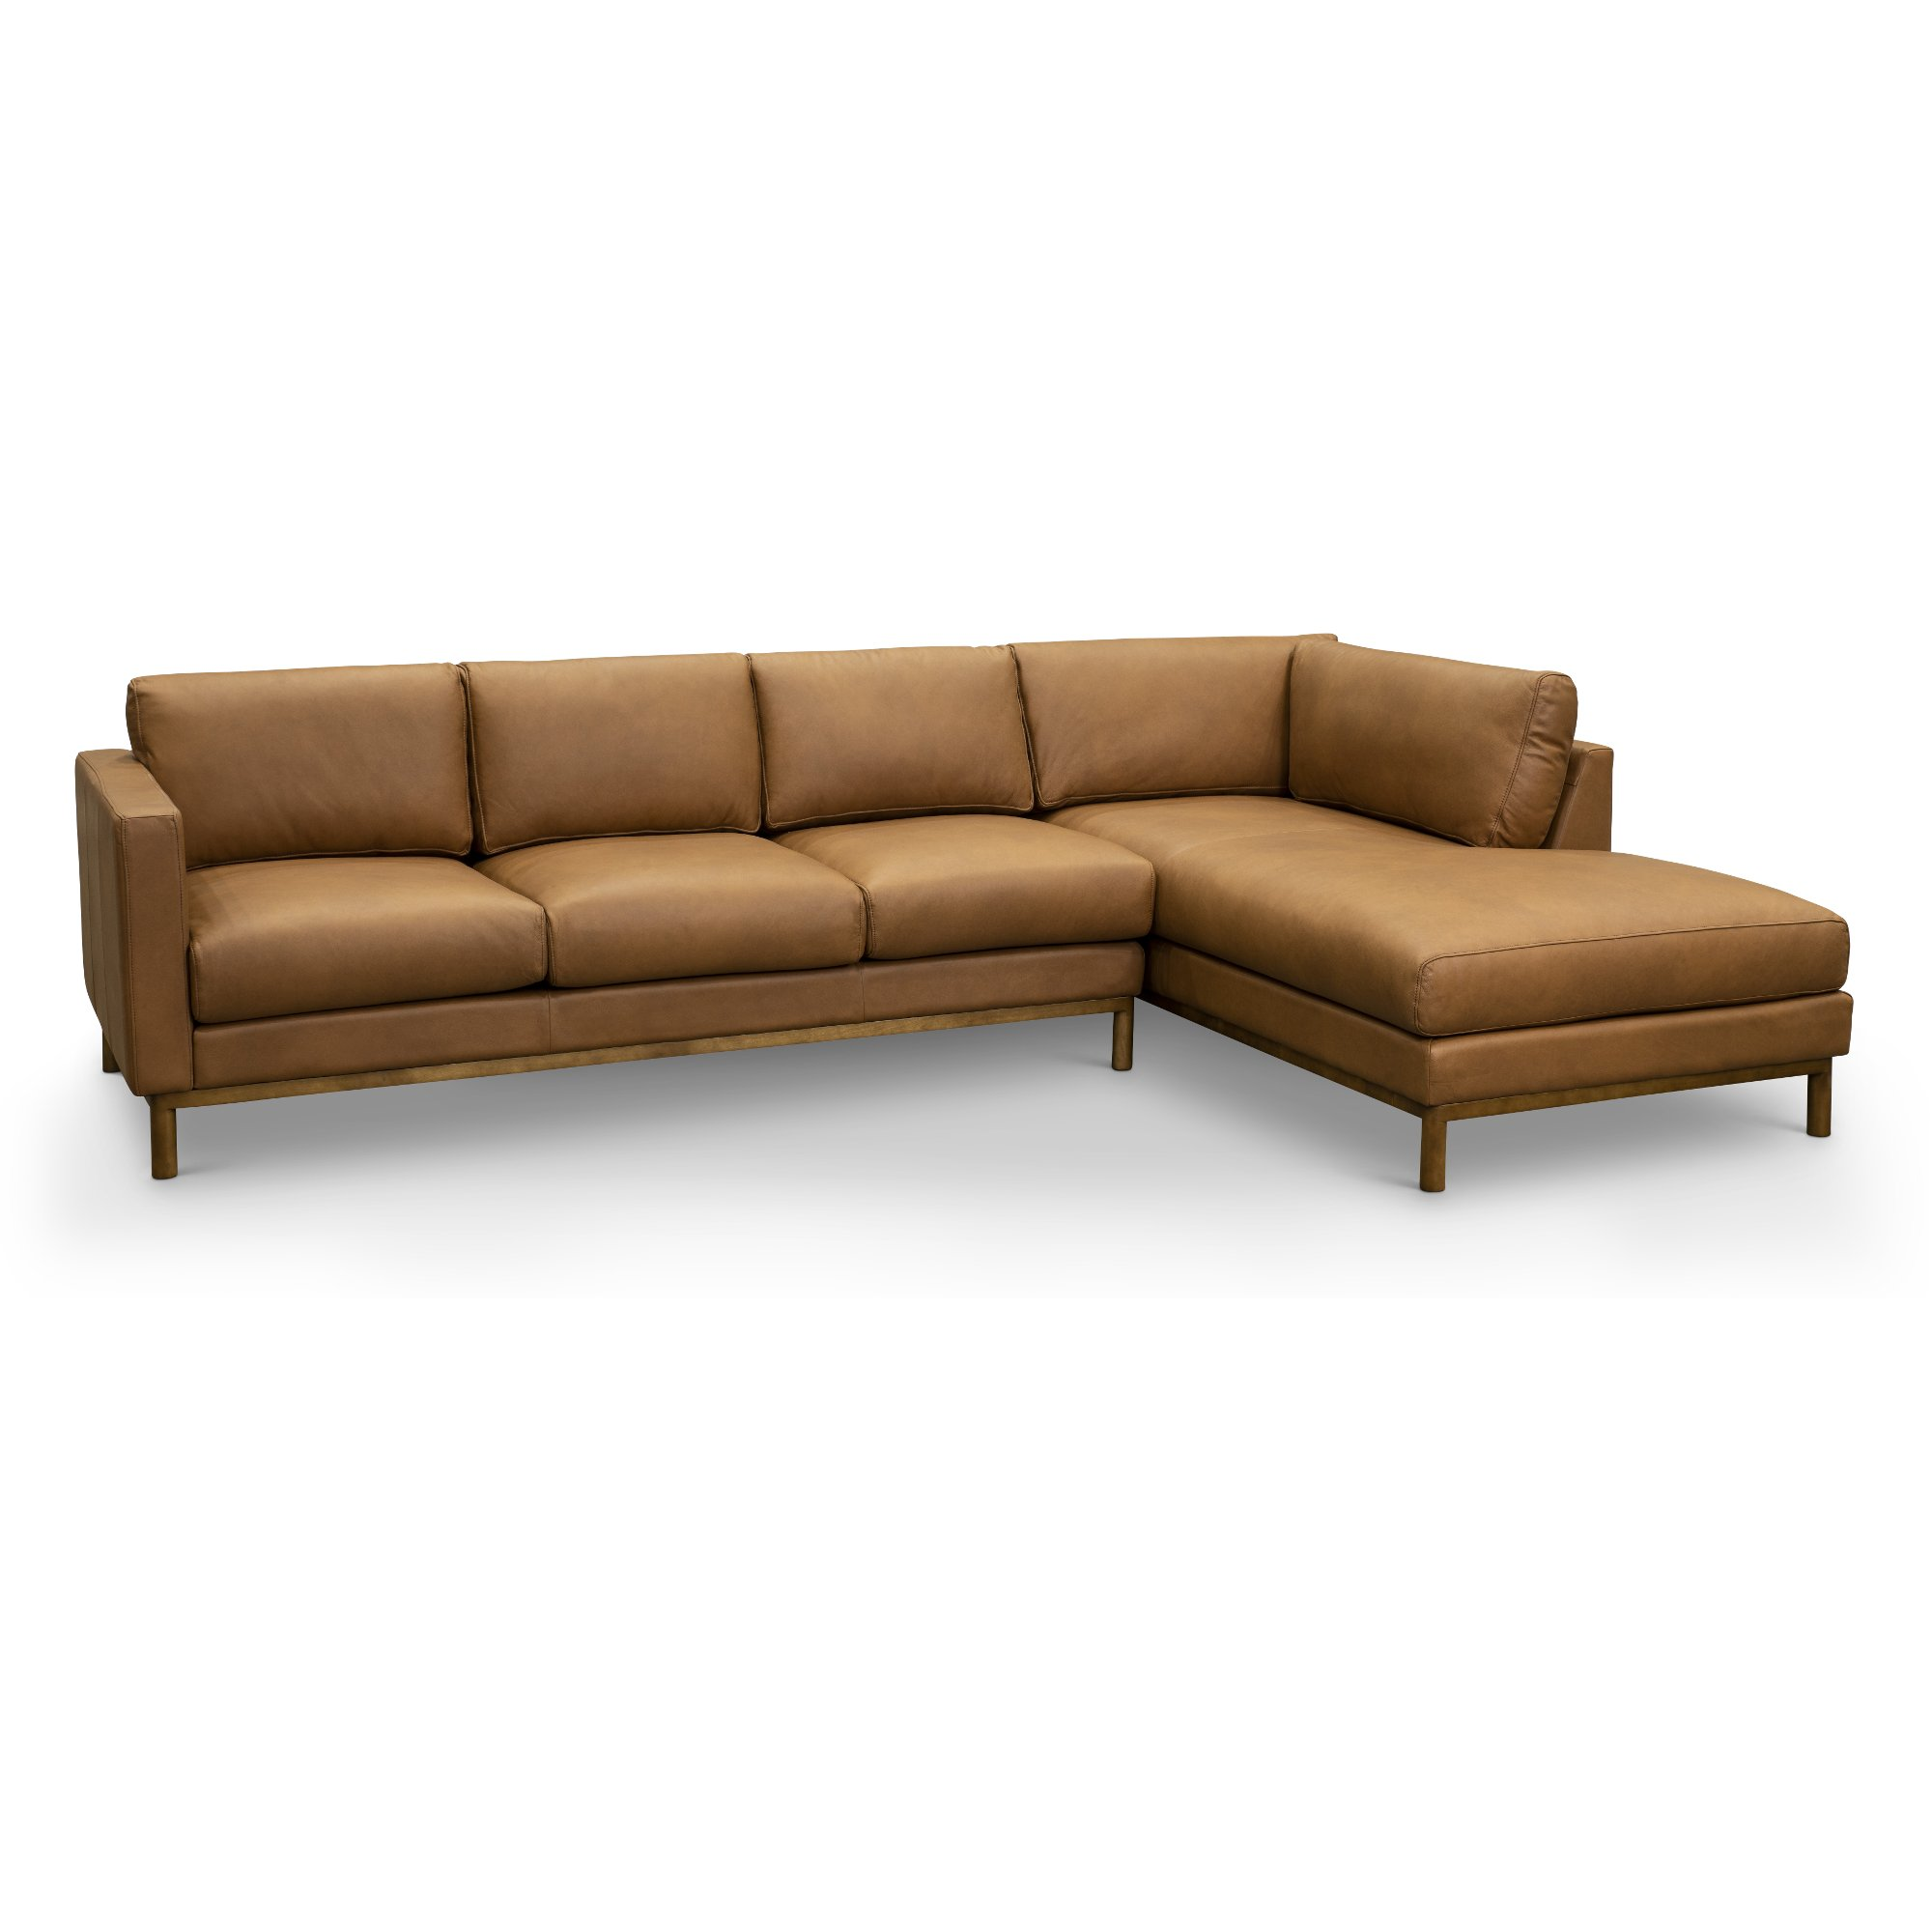 Brown Leather 2 Piece Sectional Sofa with RAF Chaise - Freehand